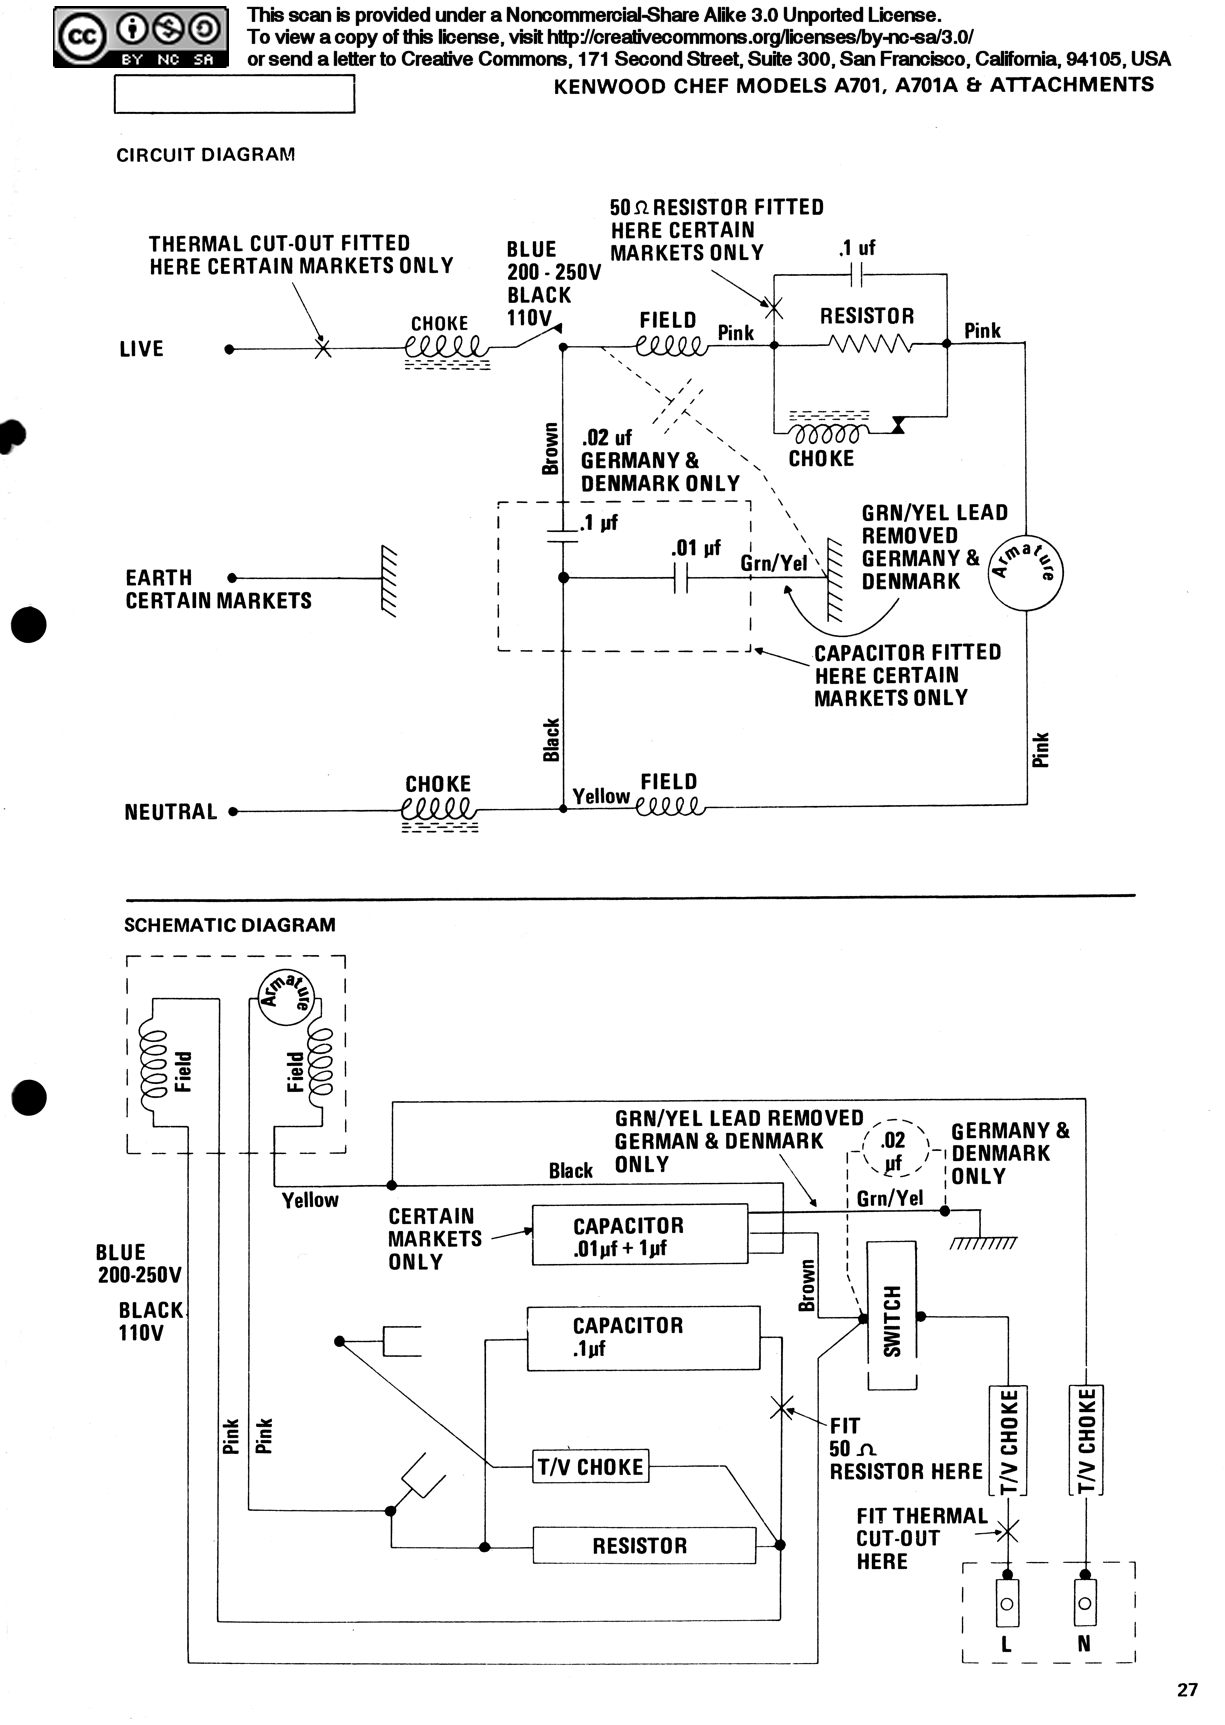 How to repair a kenwood chef gearbox wiring diagram swarovskicordoba Images